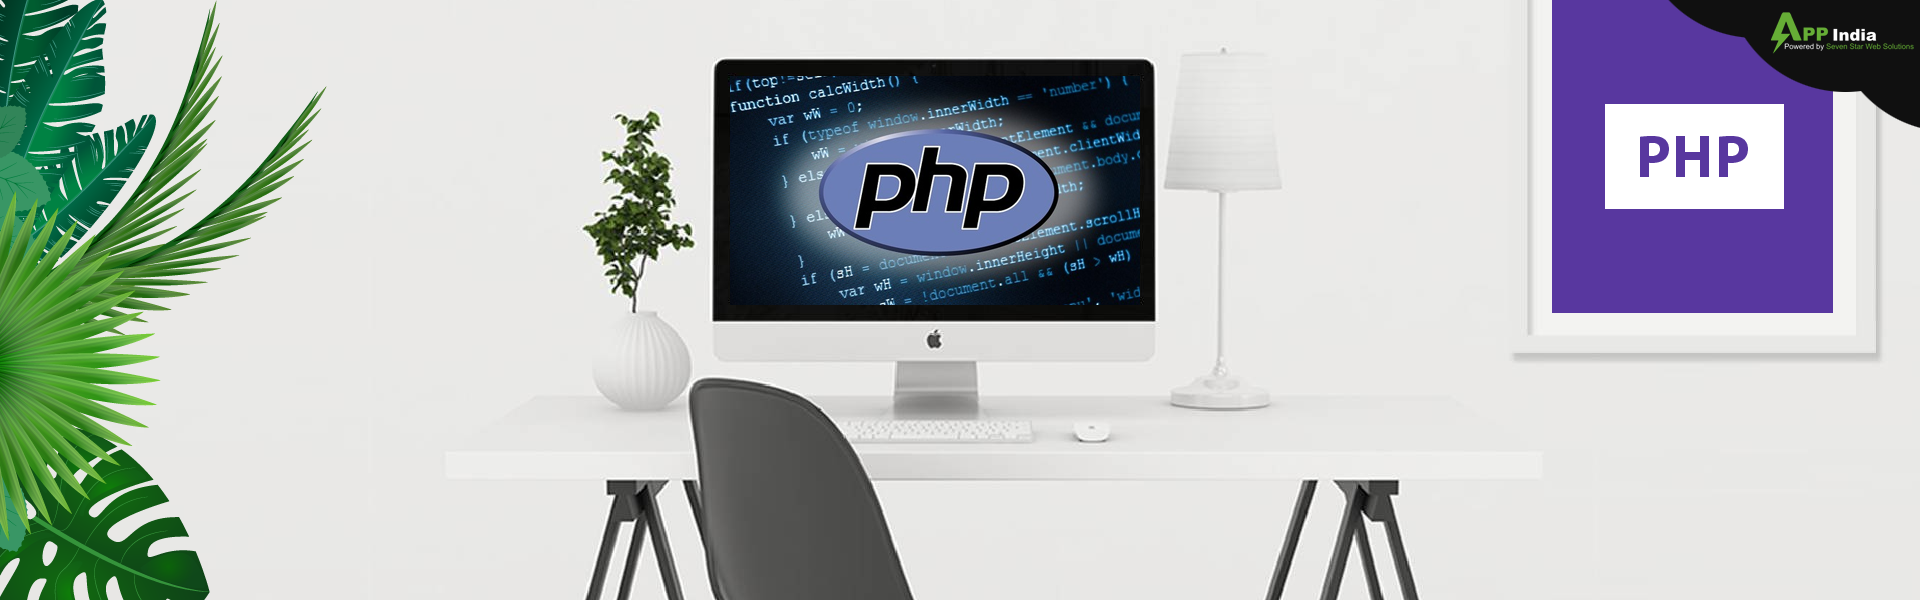 PHP Web Development Company